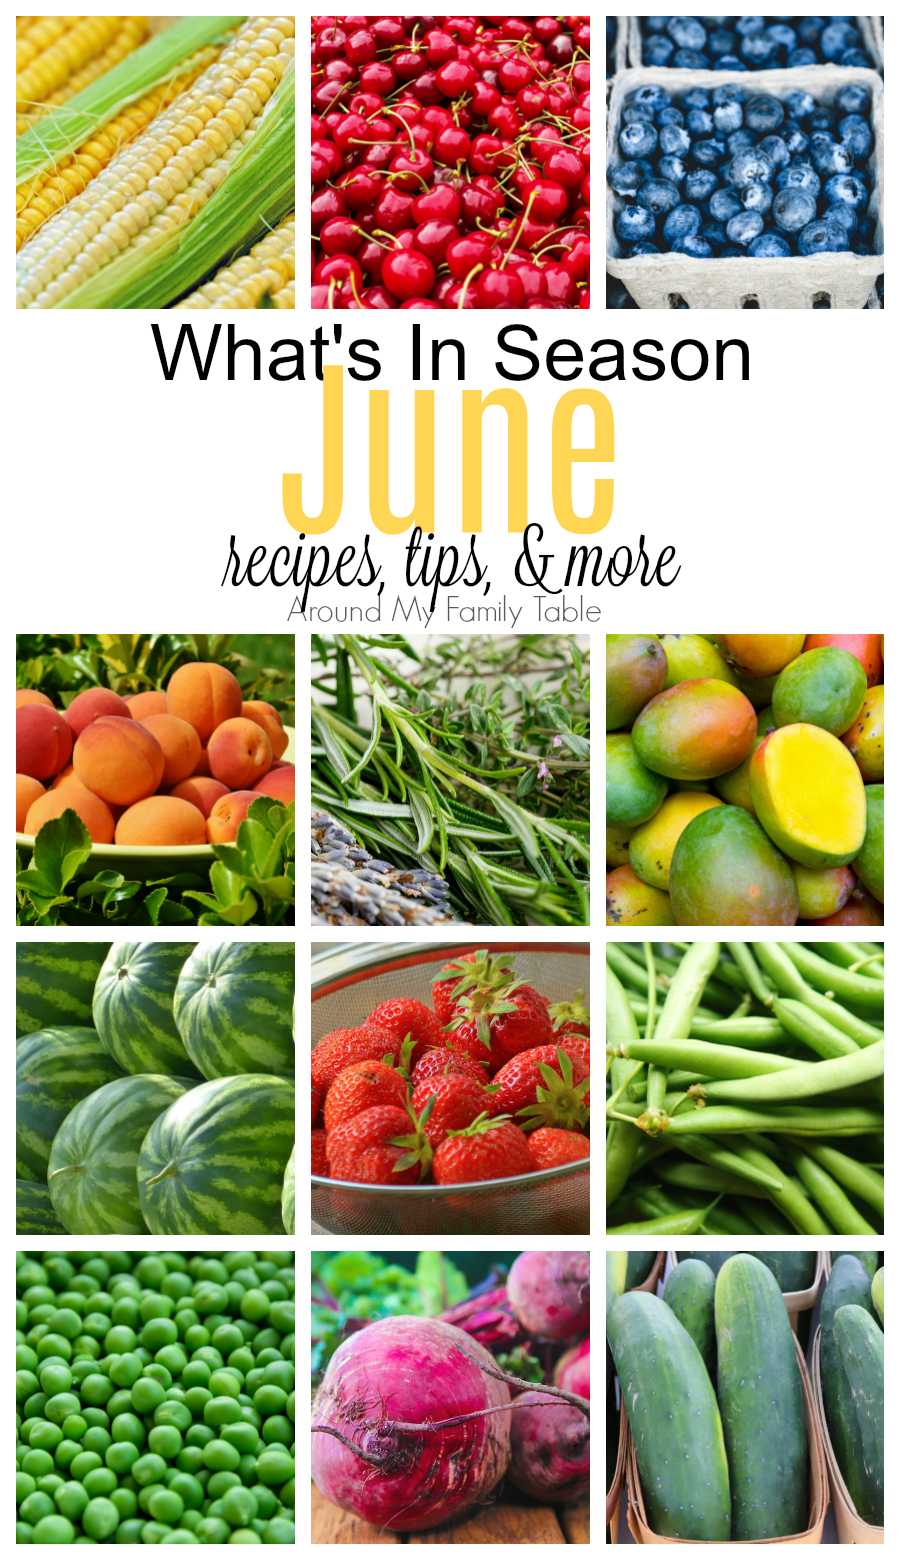 June has is a mixture is full of summer berries and stone fruit, with a few vegetables thrown in too. Find out all about June Seasonal Produce in this June -- What's In Season Guide. #seasonalproduce #whatsinseason #eatseasonally via @slingmama